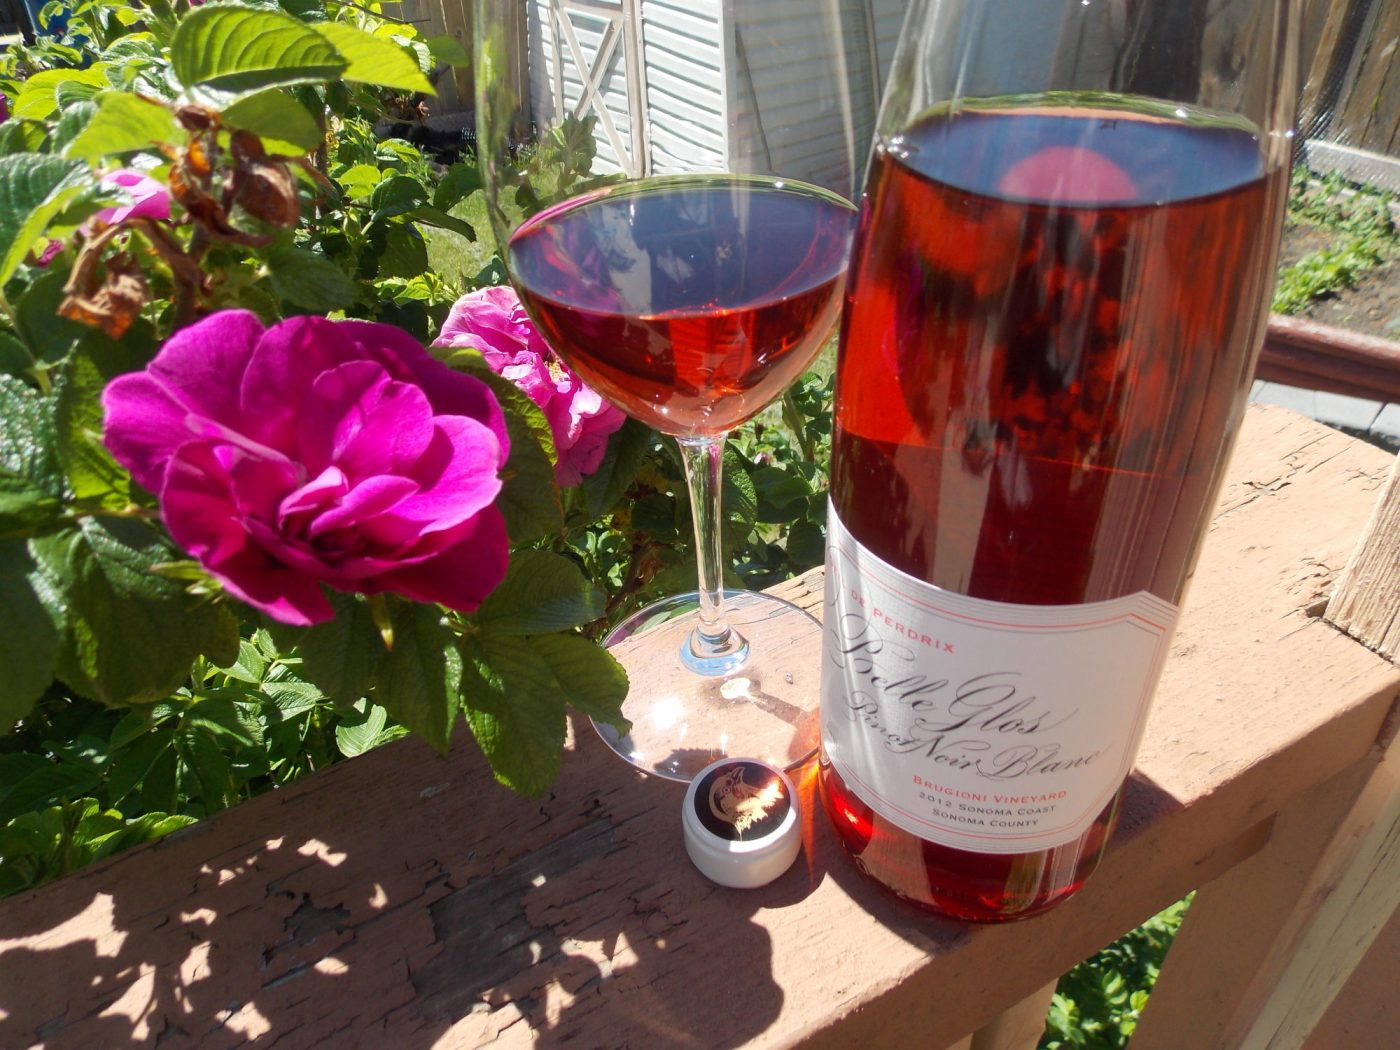 writing about rose pink wine in the spring